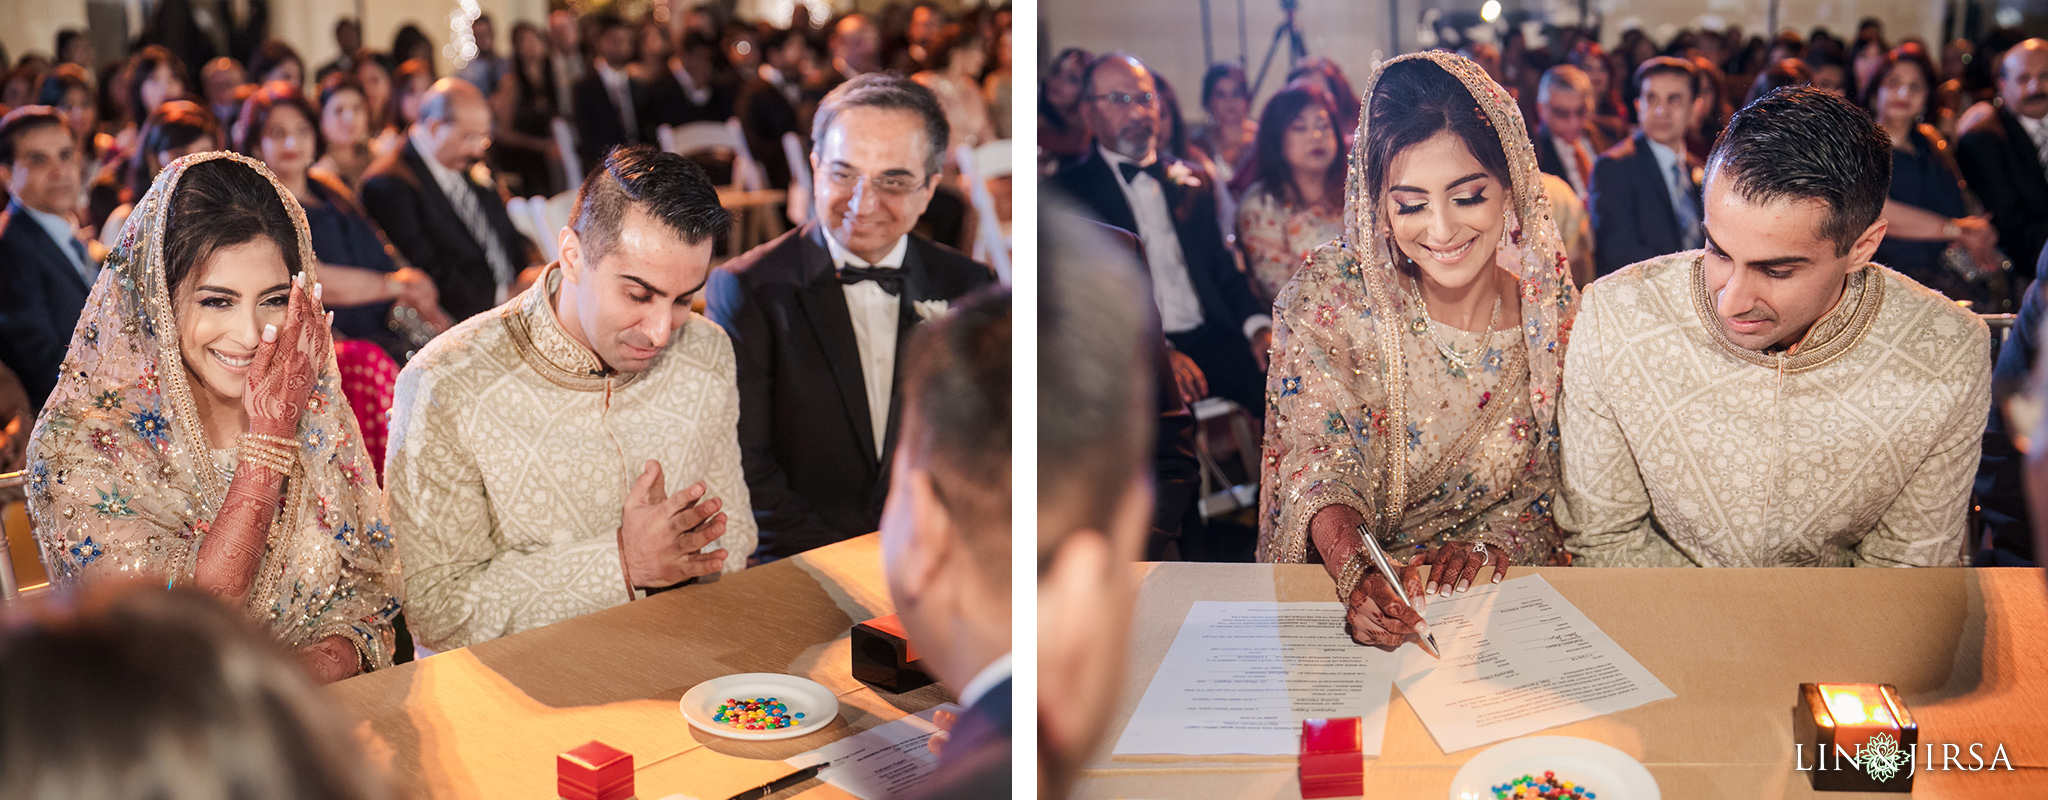 33 beverly hilton los angeles muslim wedding